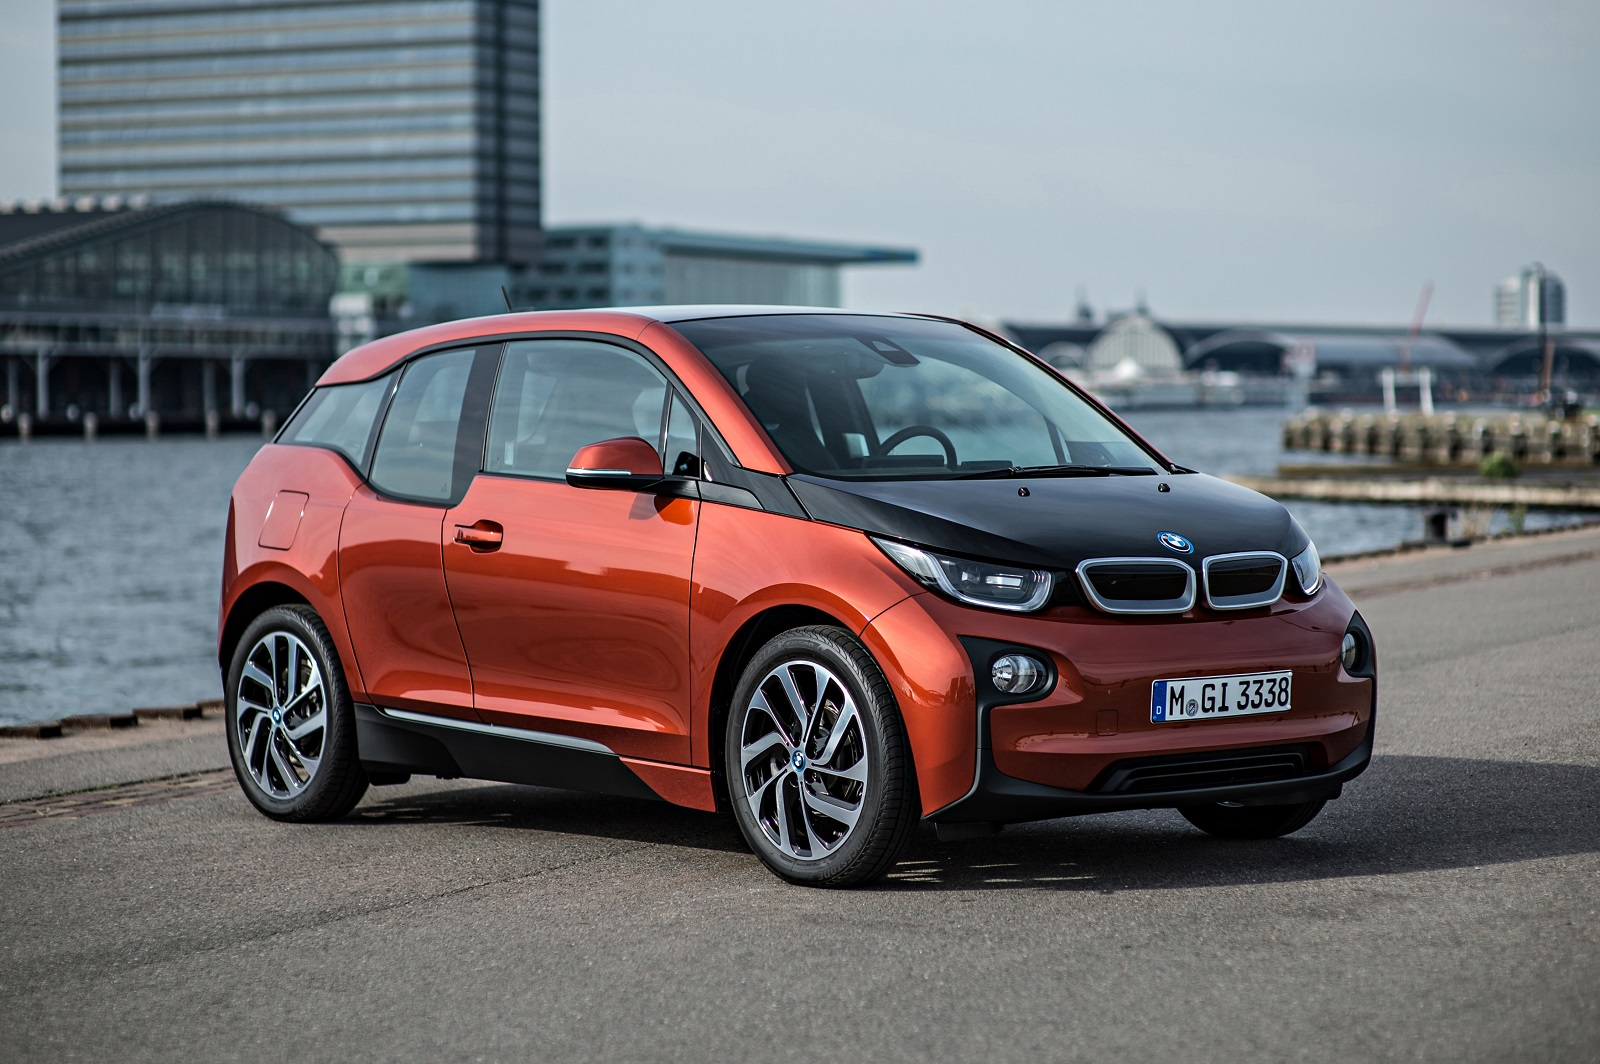 2015 Bmw I3 Car News Newslocker